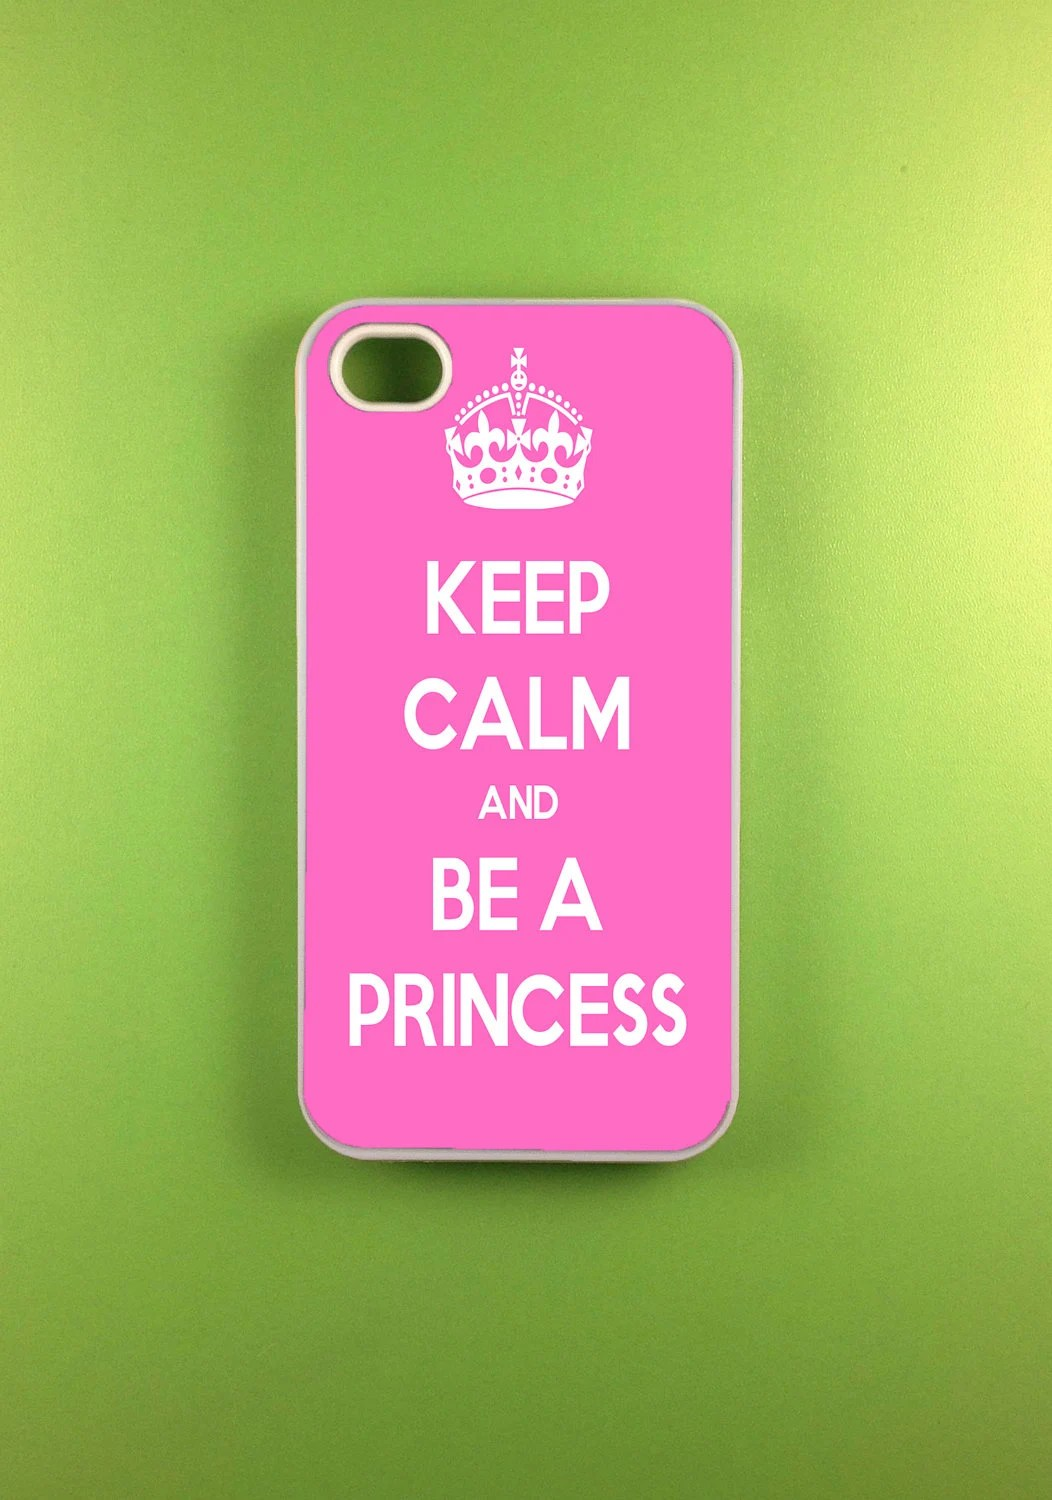 http://www.etsy.com/listing/109440800/iphone-4-case-keep-calm-be-princess?ref=sr_gallery_3&sref=sr_059be7d135cc1d98309ad20f04b959790d77f3adf960ab9ad6fcd3671d79a965_1366270213_14373208_phone&ga_search_query=+phone++Case&ga_order=most_relevant&ga_view_type=gallery&ga_ship_to=ES&ga_search_type=vintage